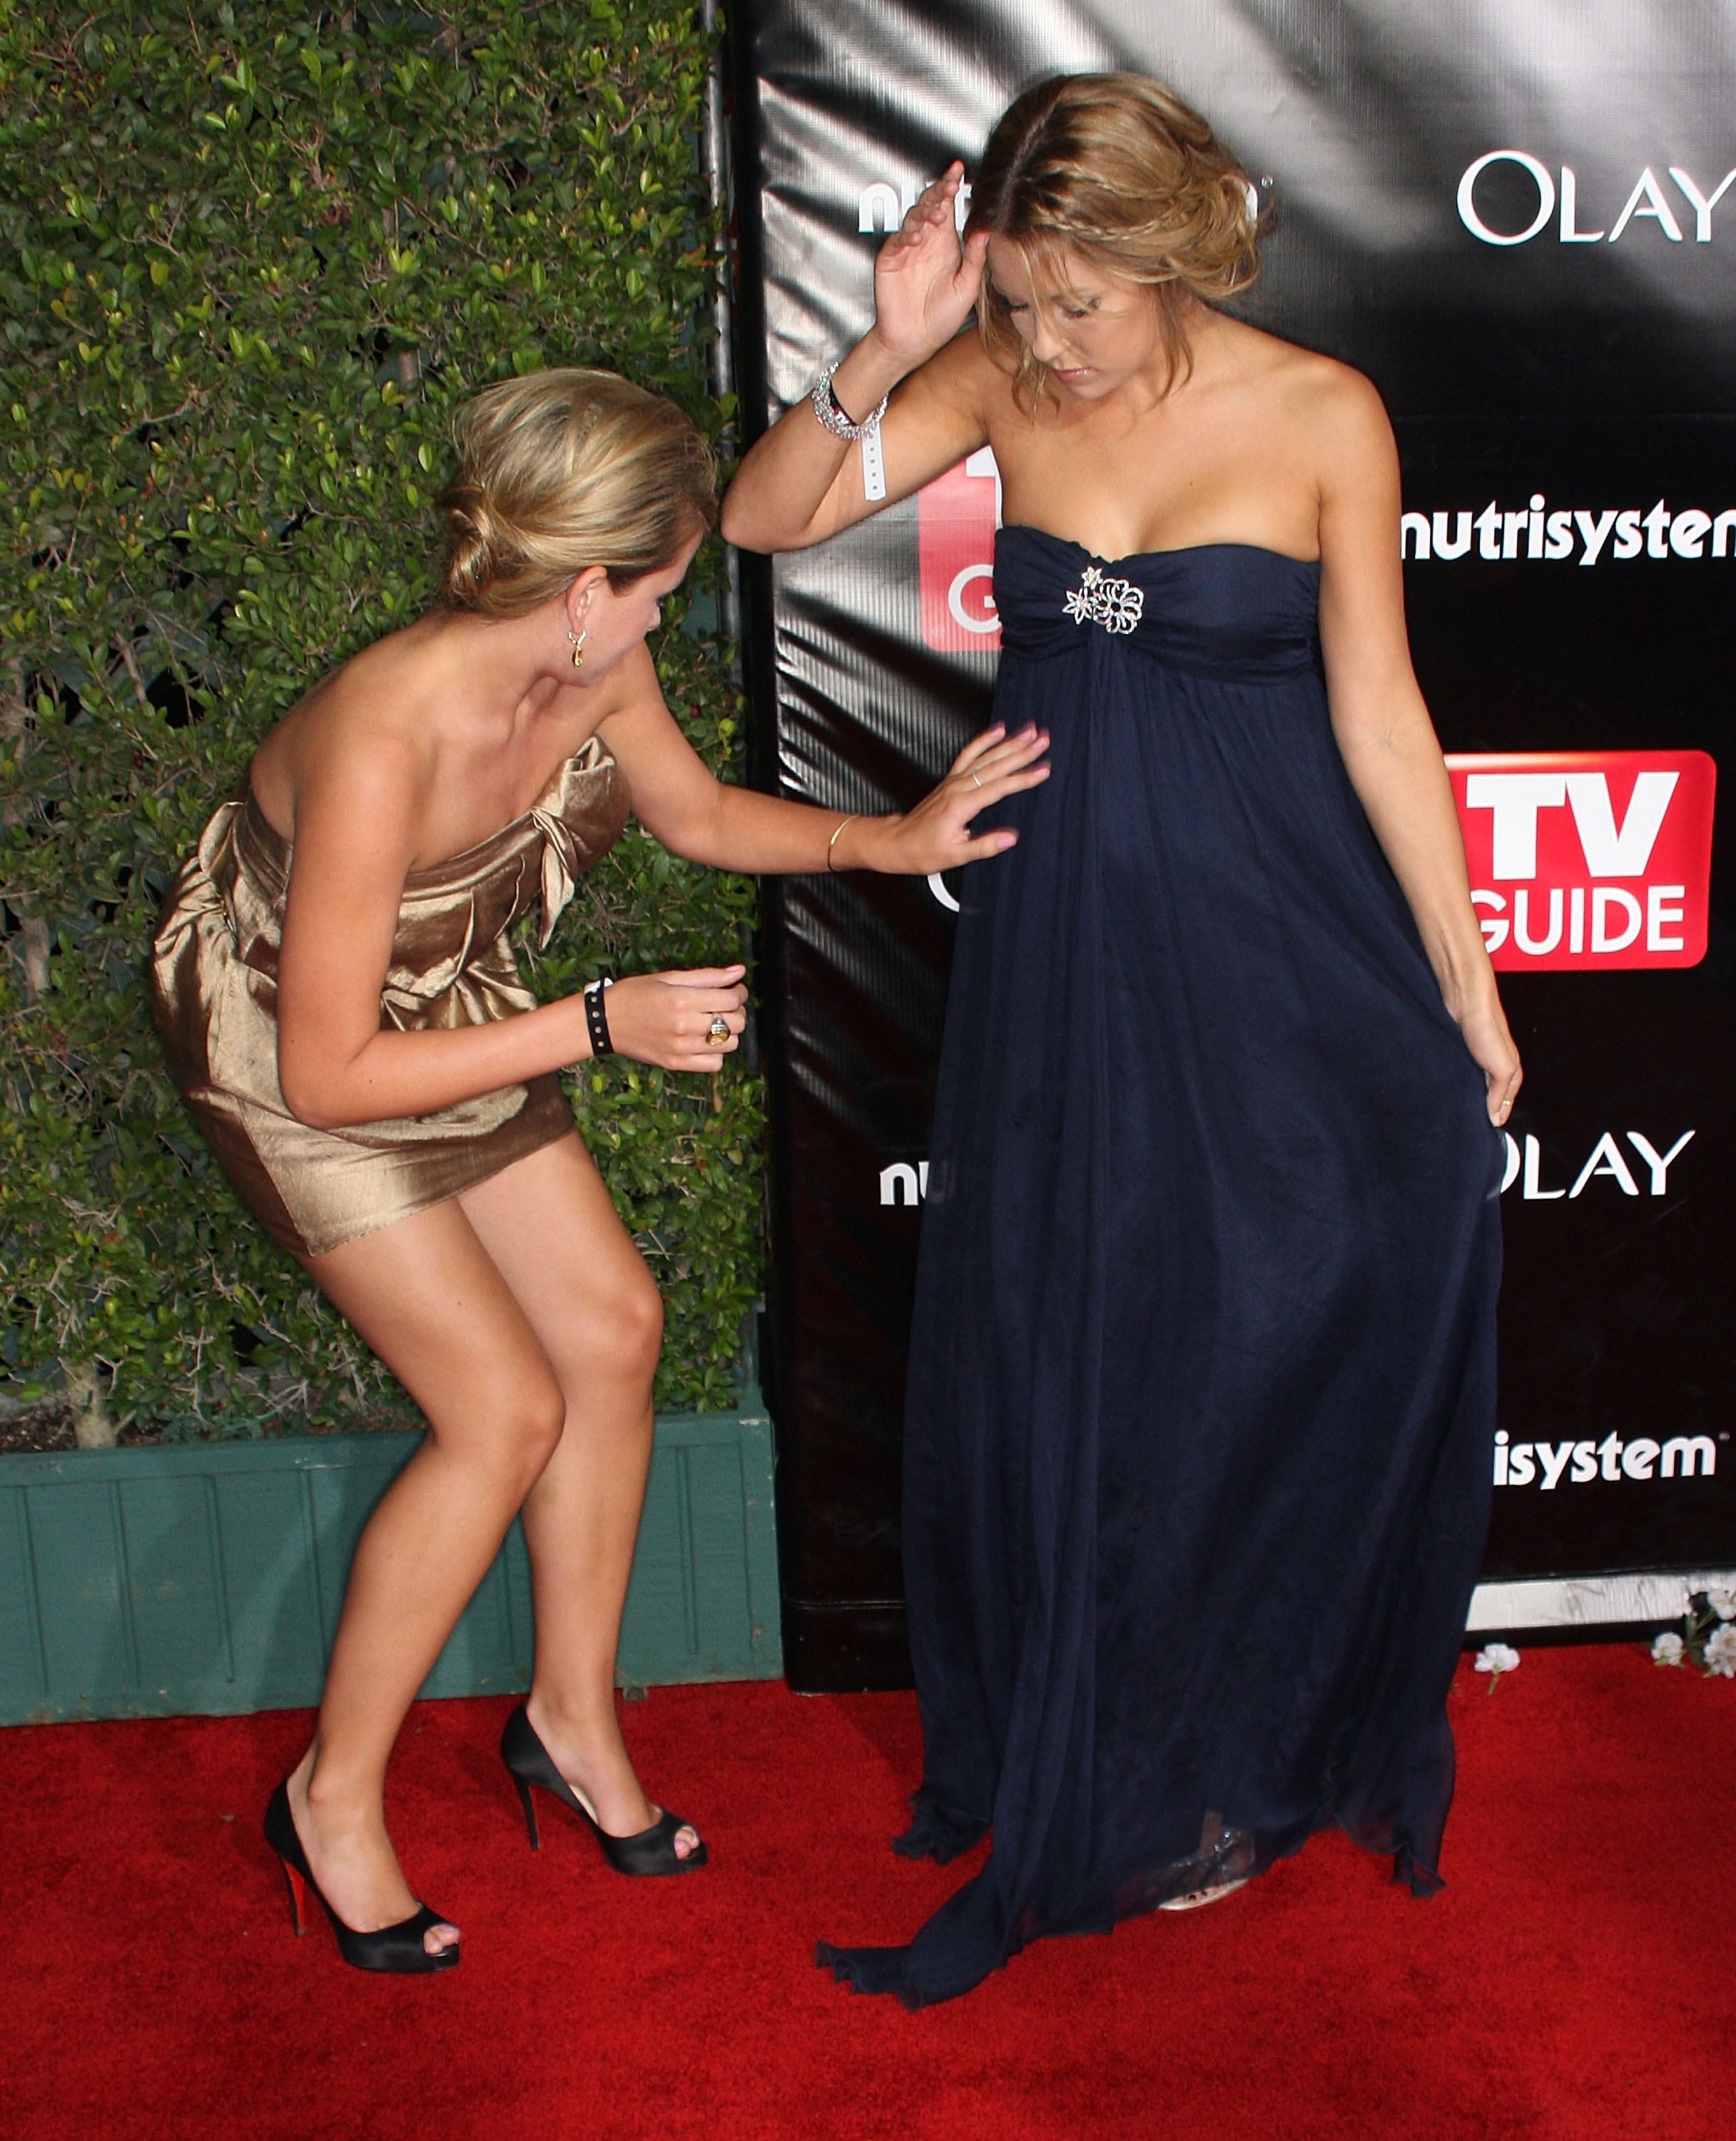 99025_Celebutopia-Lo_Bosworth_and_Lauren_Conrad-TV_Guide85s_Sixth_Annual_Emmy_Awards_After_Party-02_122_724lo.jpg